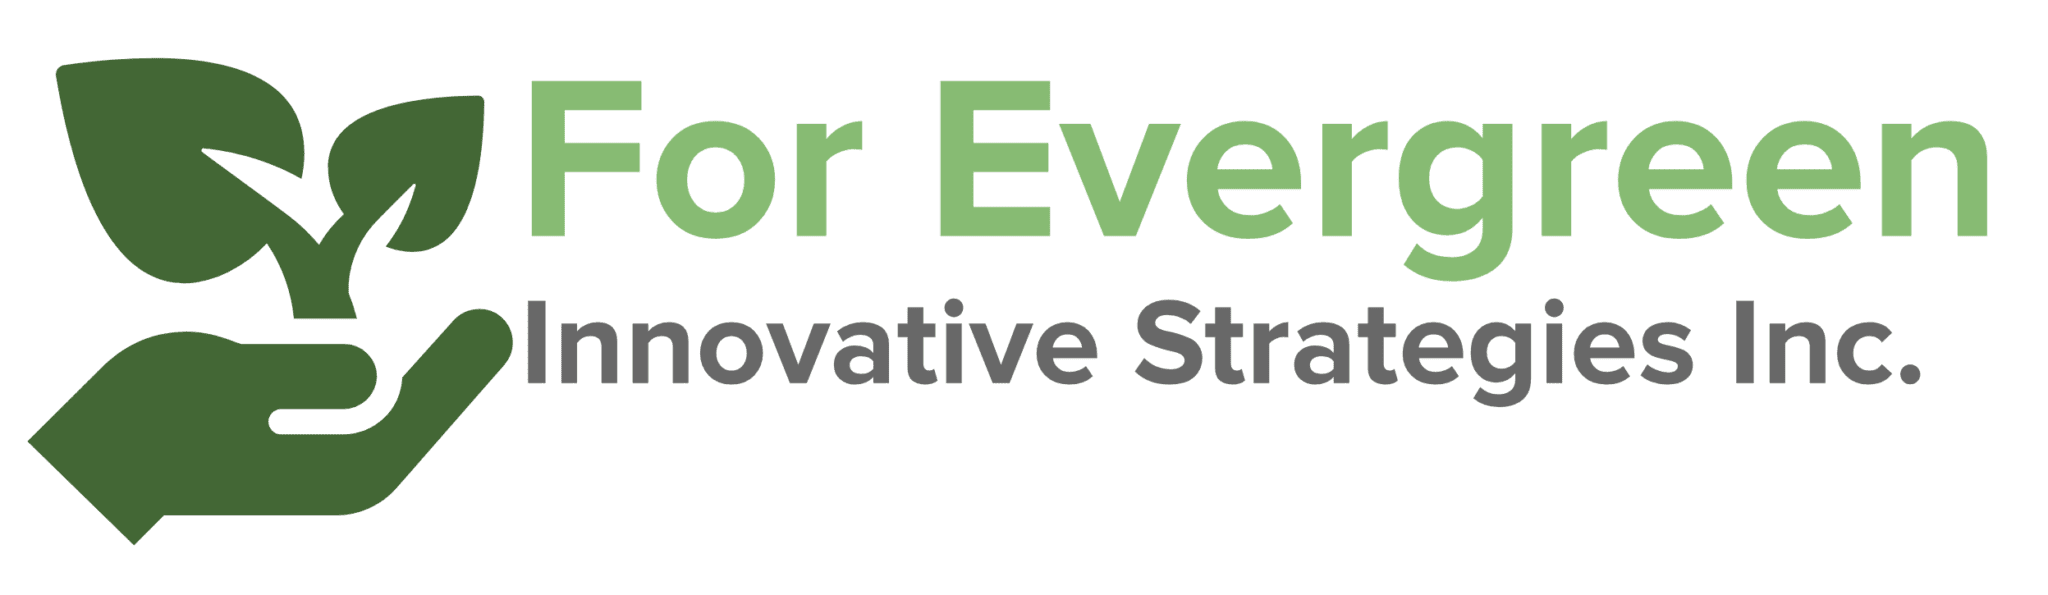 For Evergreen Innovative Strategies Inc.